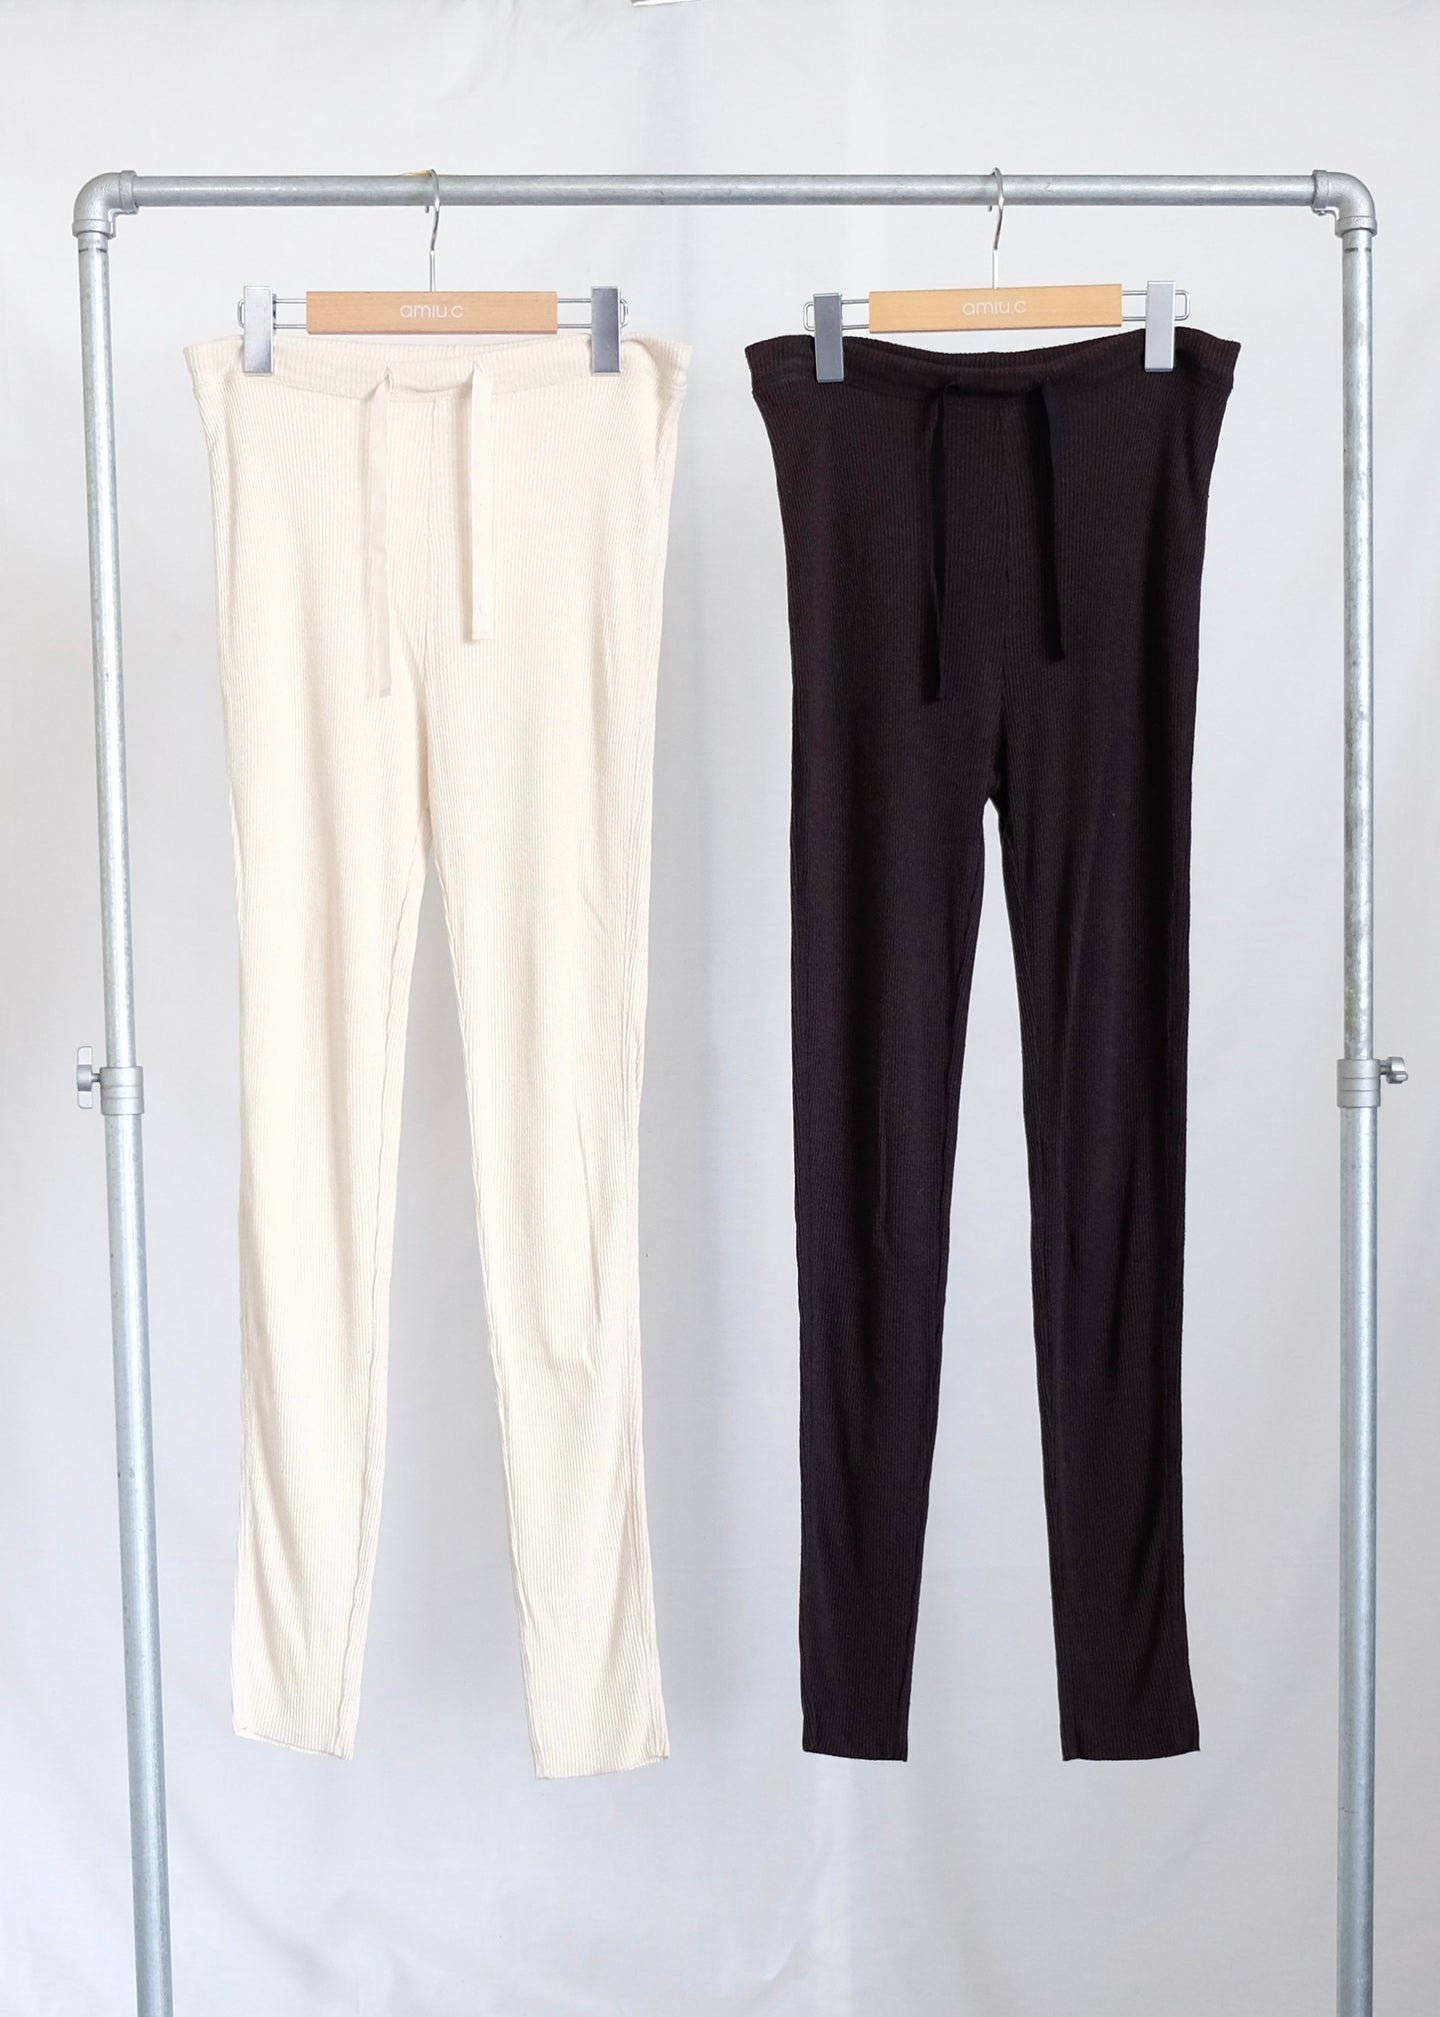 SILK RIB - LEGGINGS